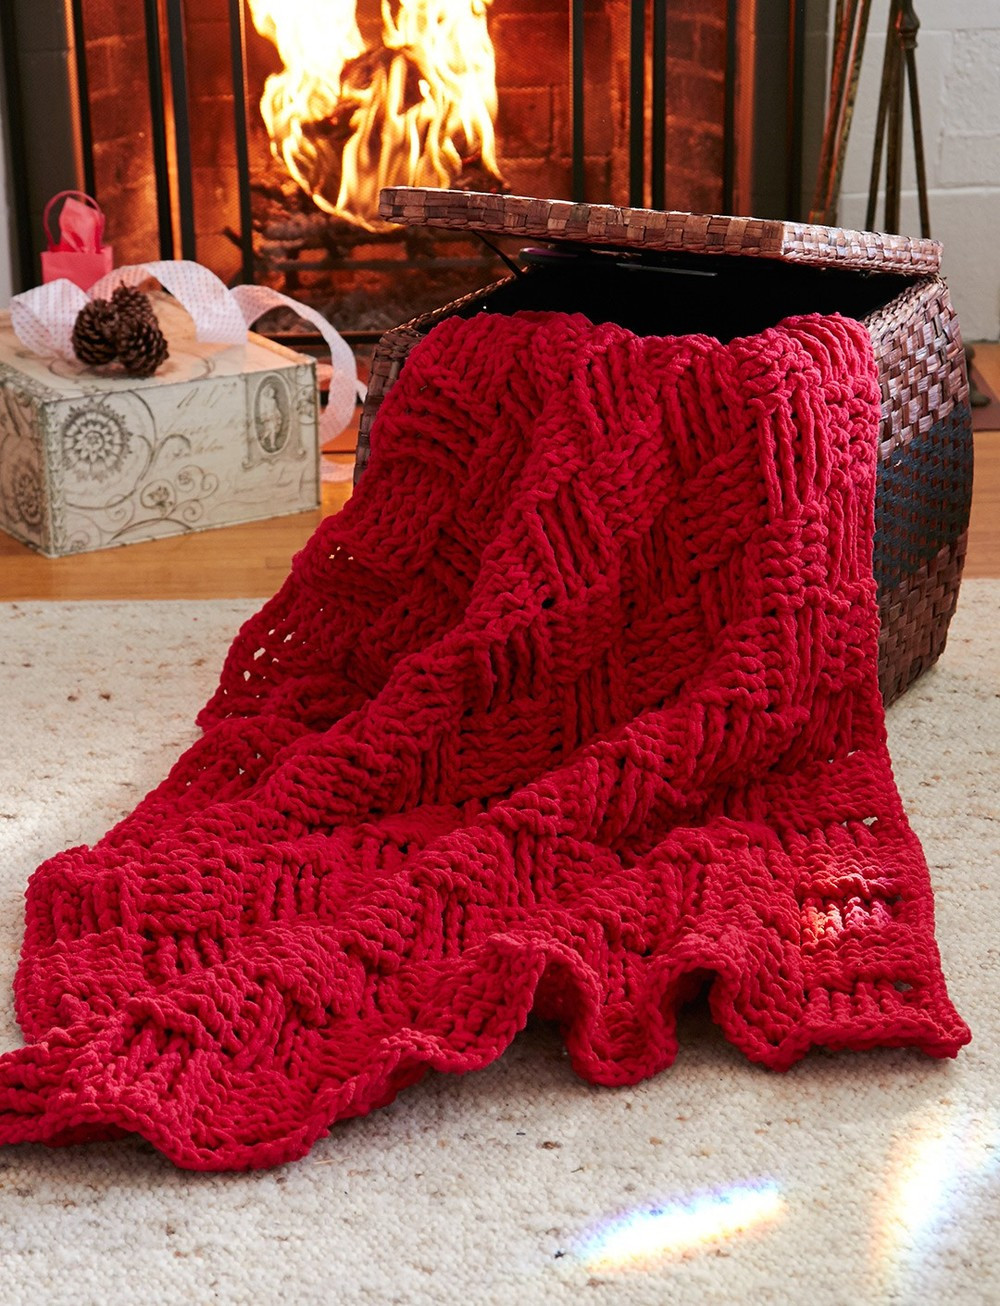 Inspirational Cranberry Basketweave Throw Basketweave Crochet Afghan Pattern Of Amazing 50 Images Basketweave Crochet Afghan Pattern